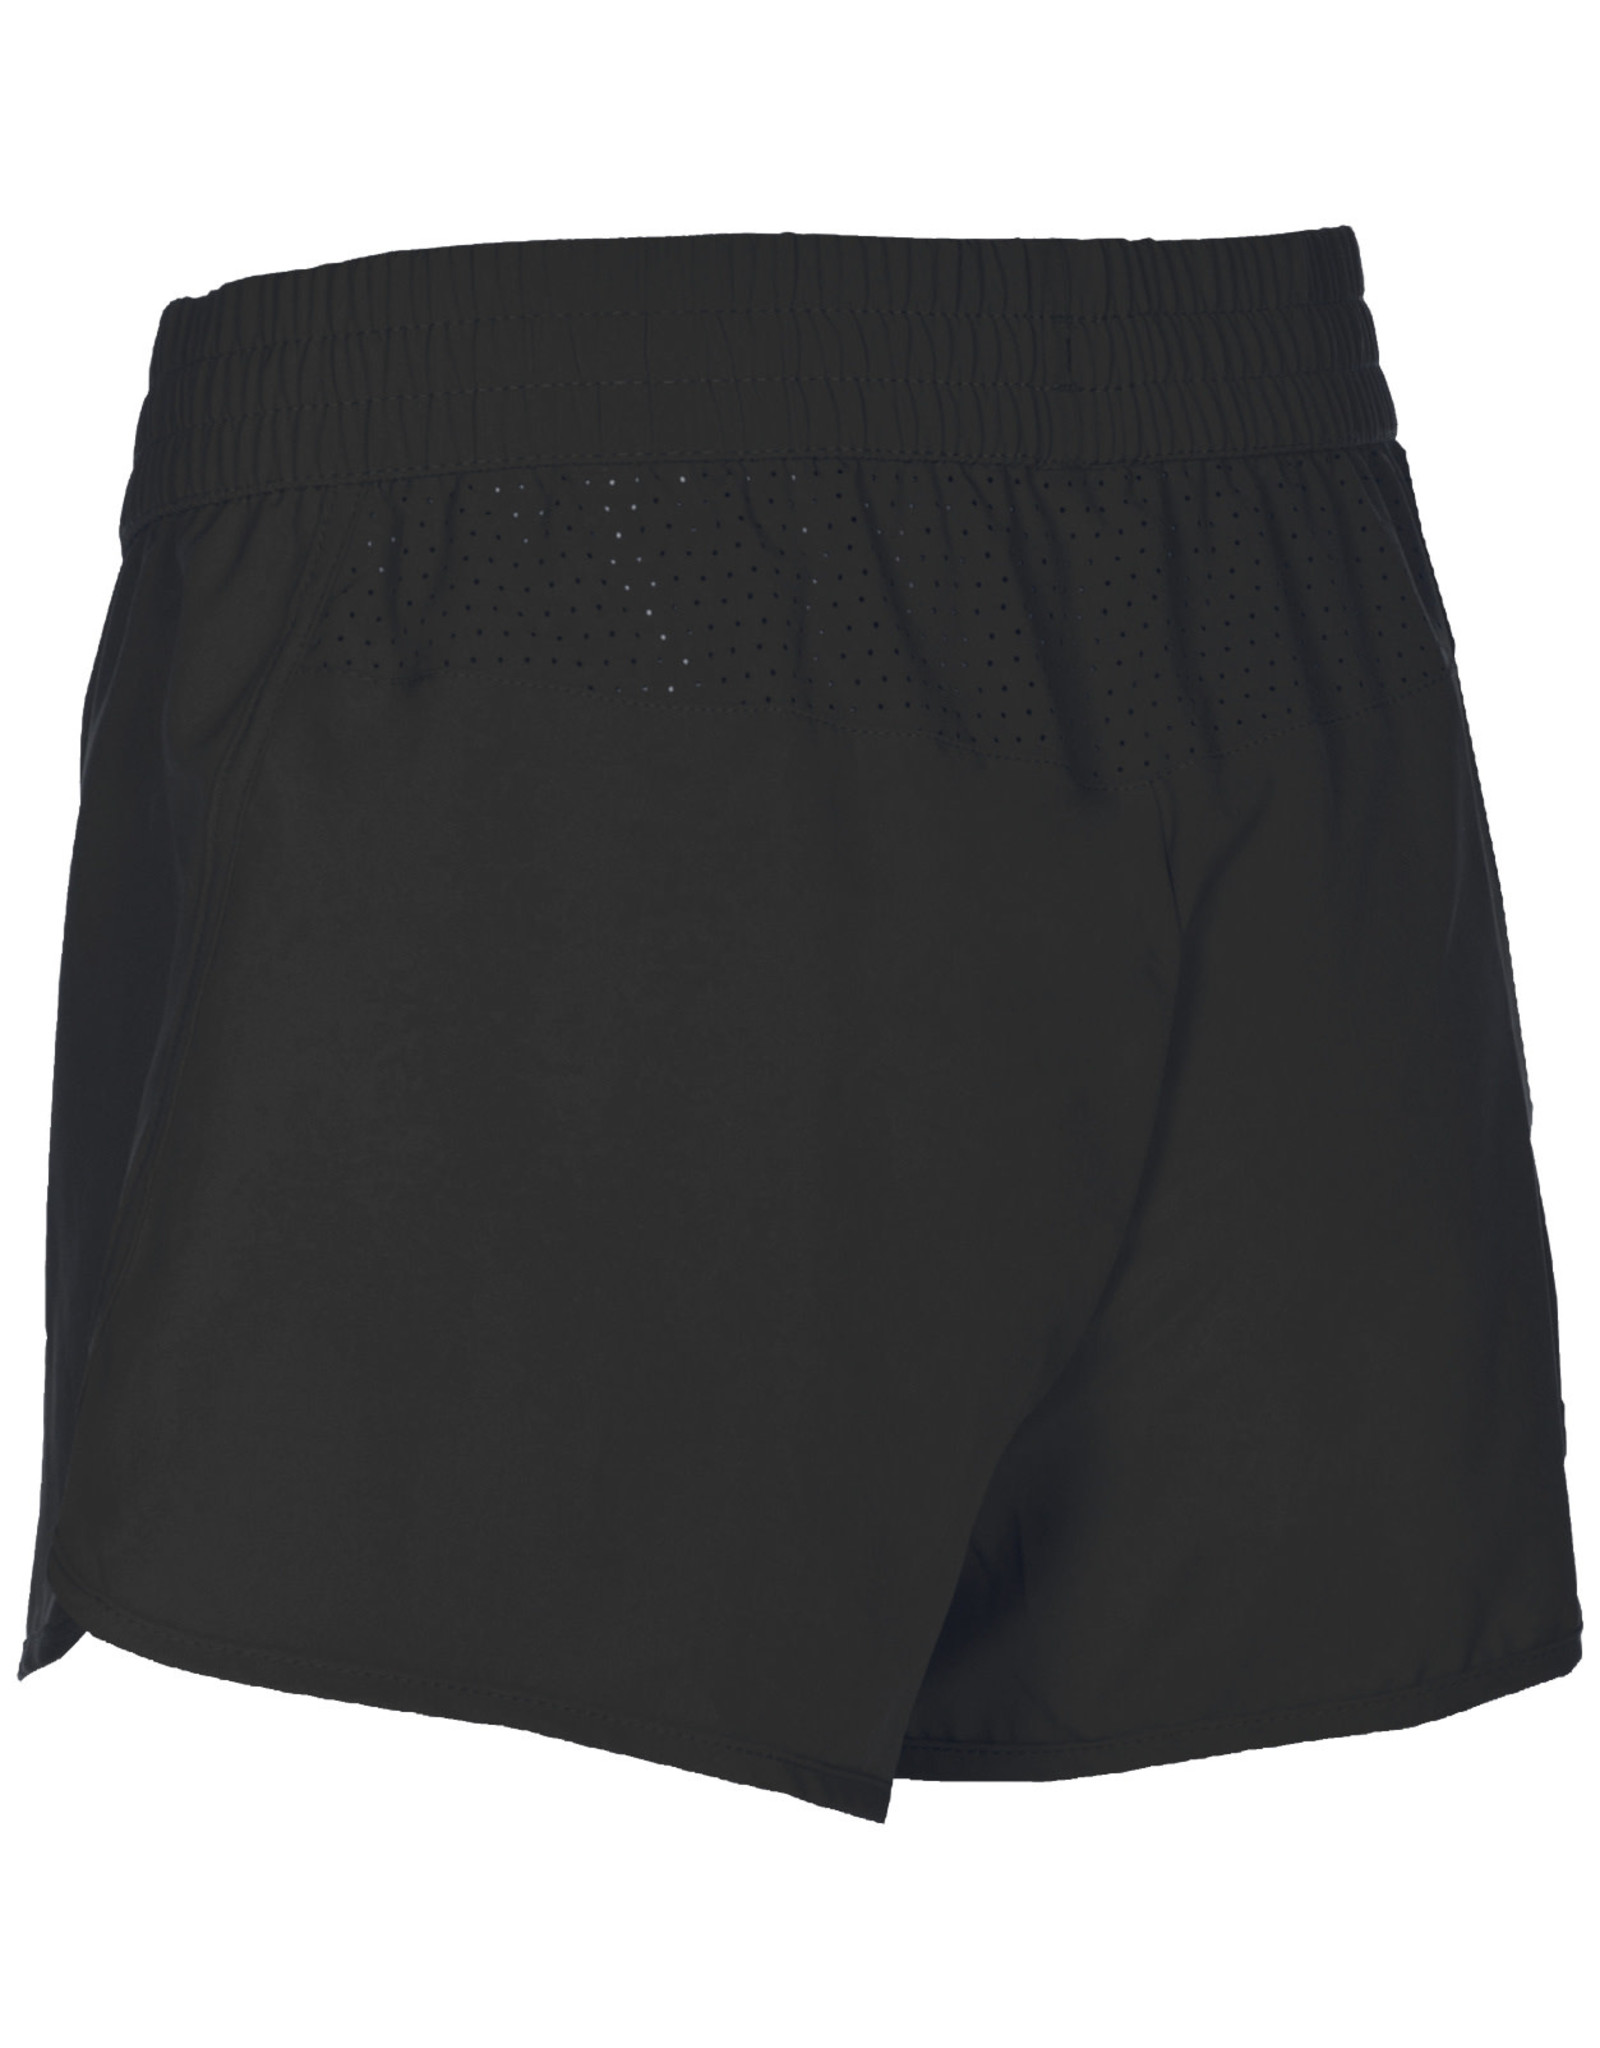 Arena Diving Running Shorts